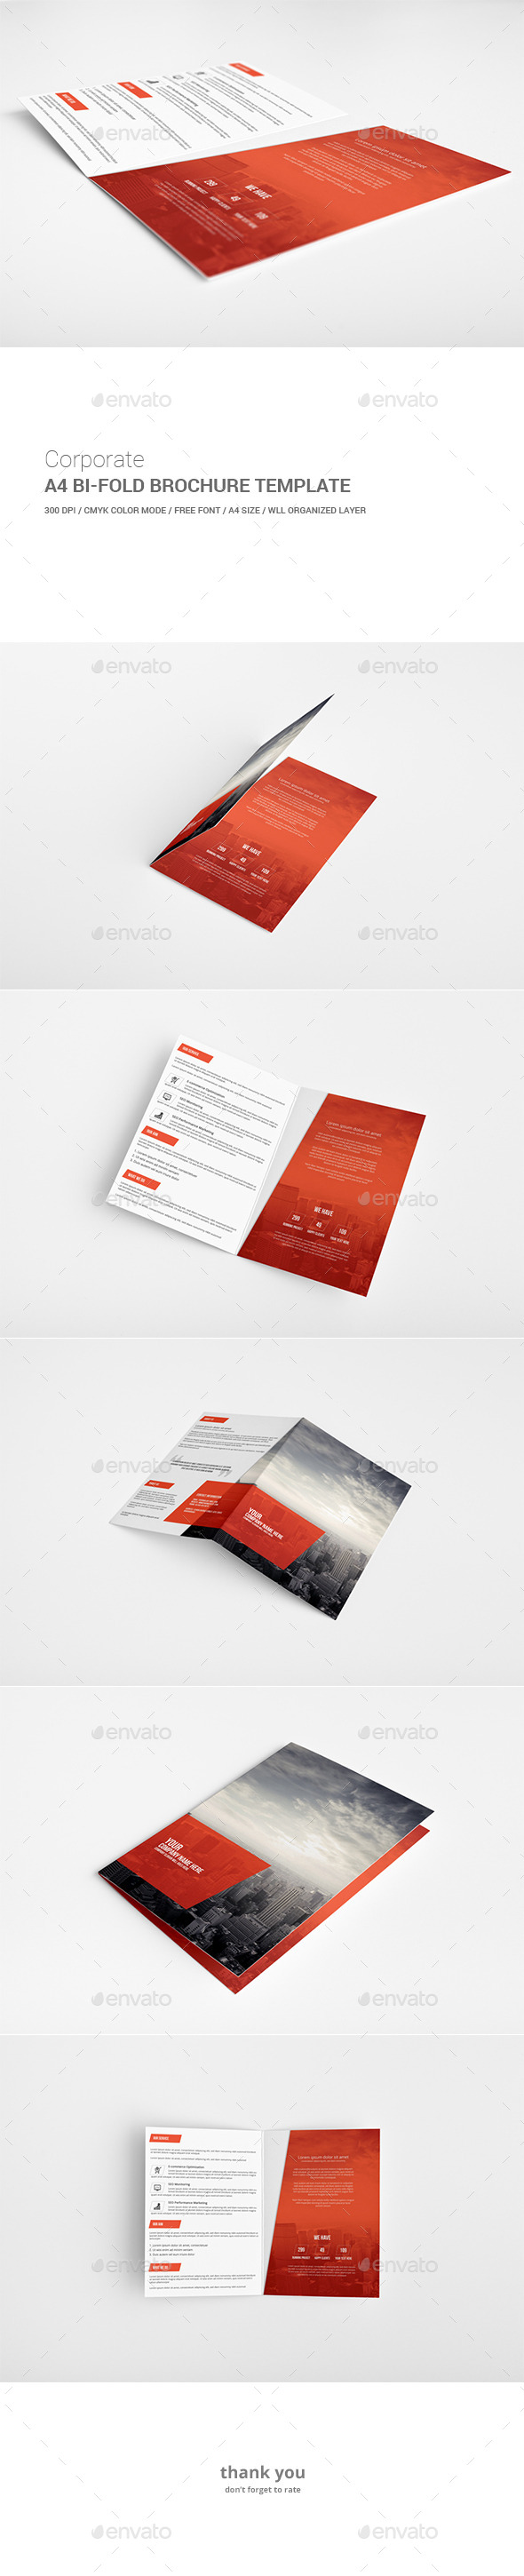 Graphicriver corporate bi fold brochure template 11948467 for Double gate fold brochure template